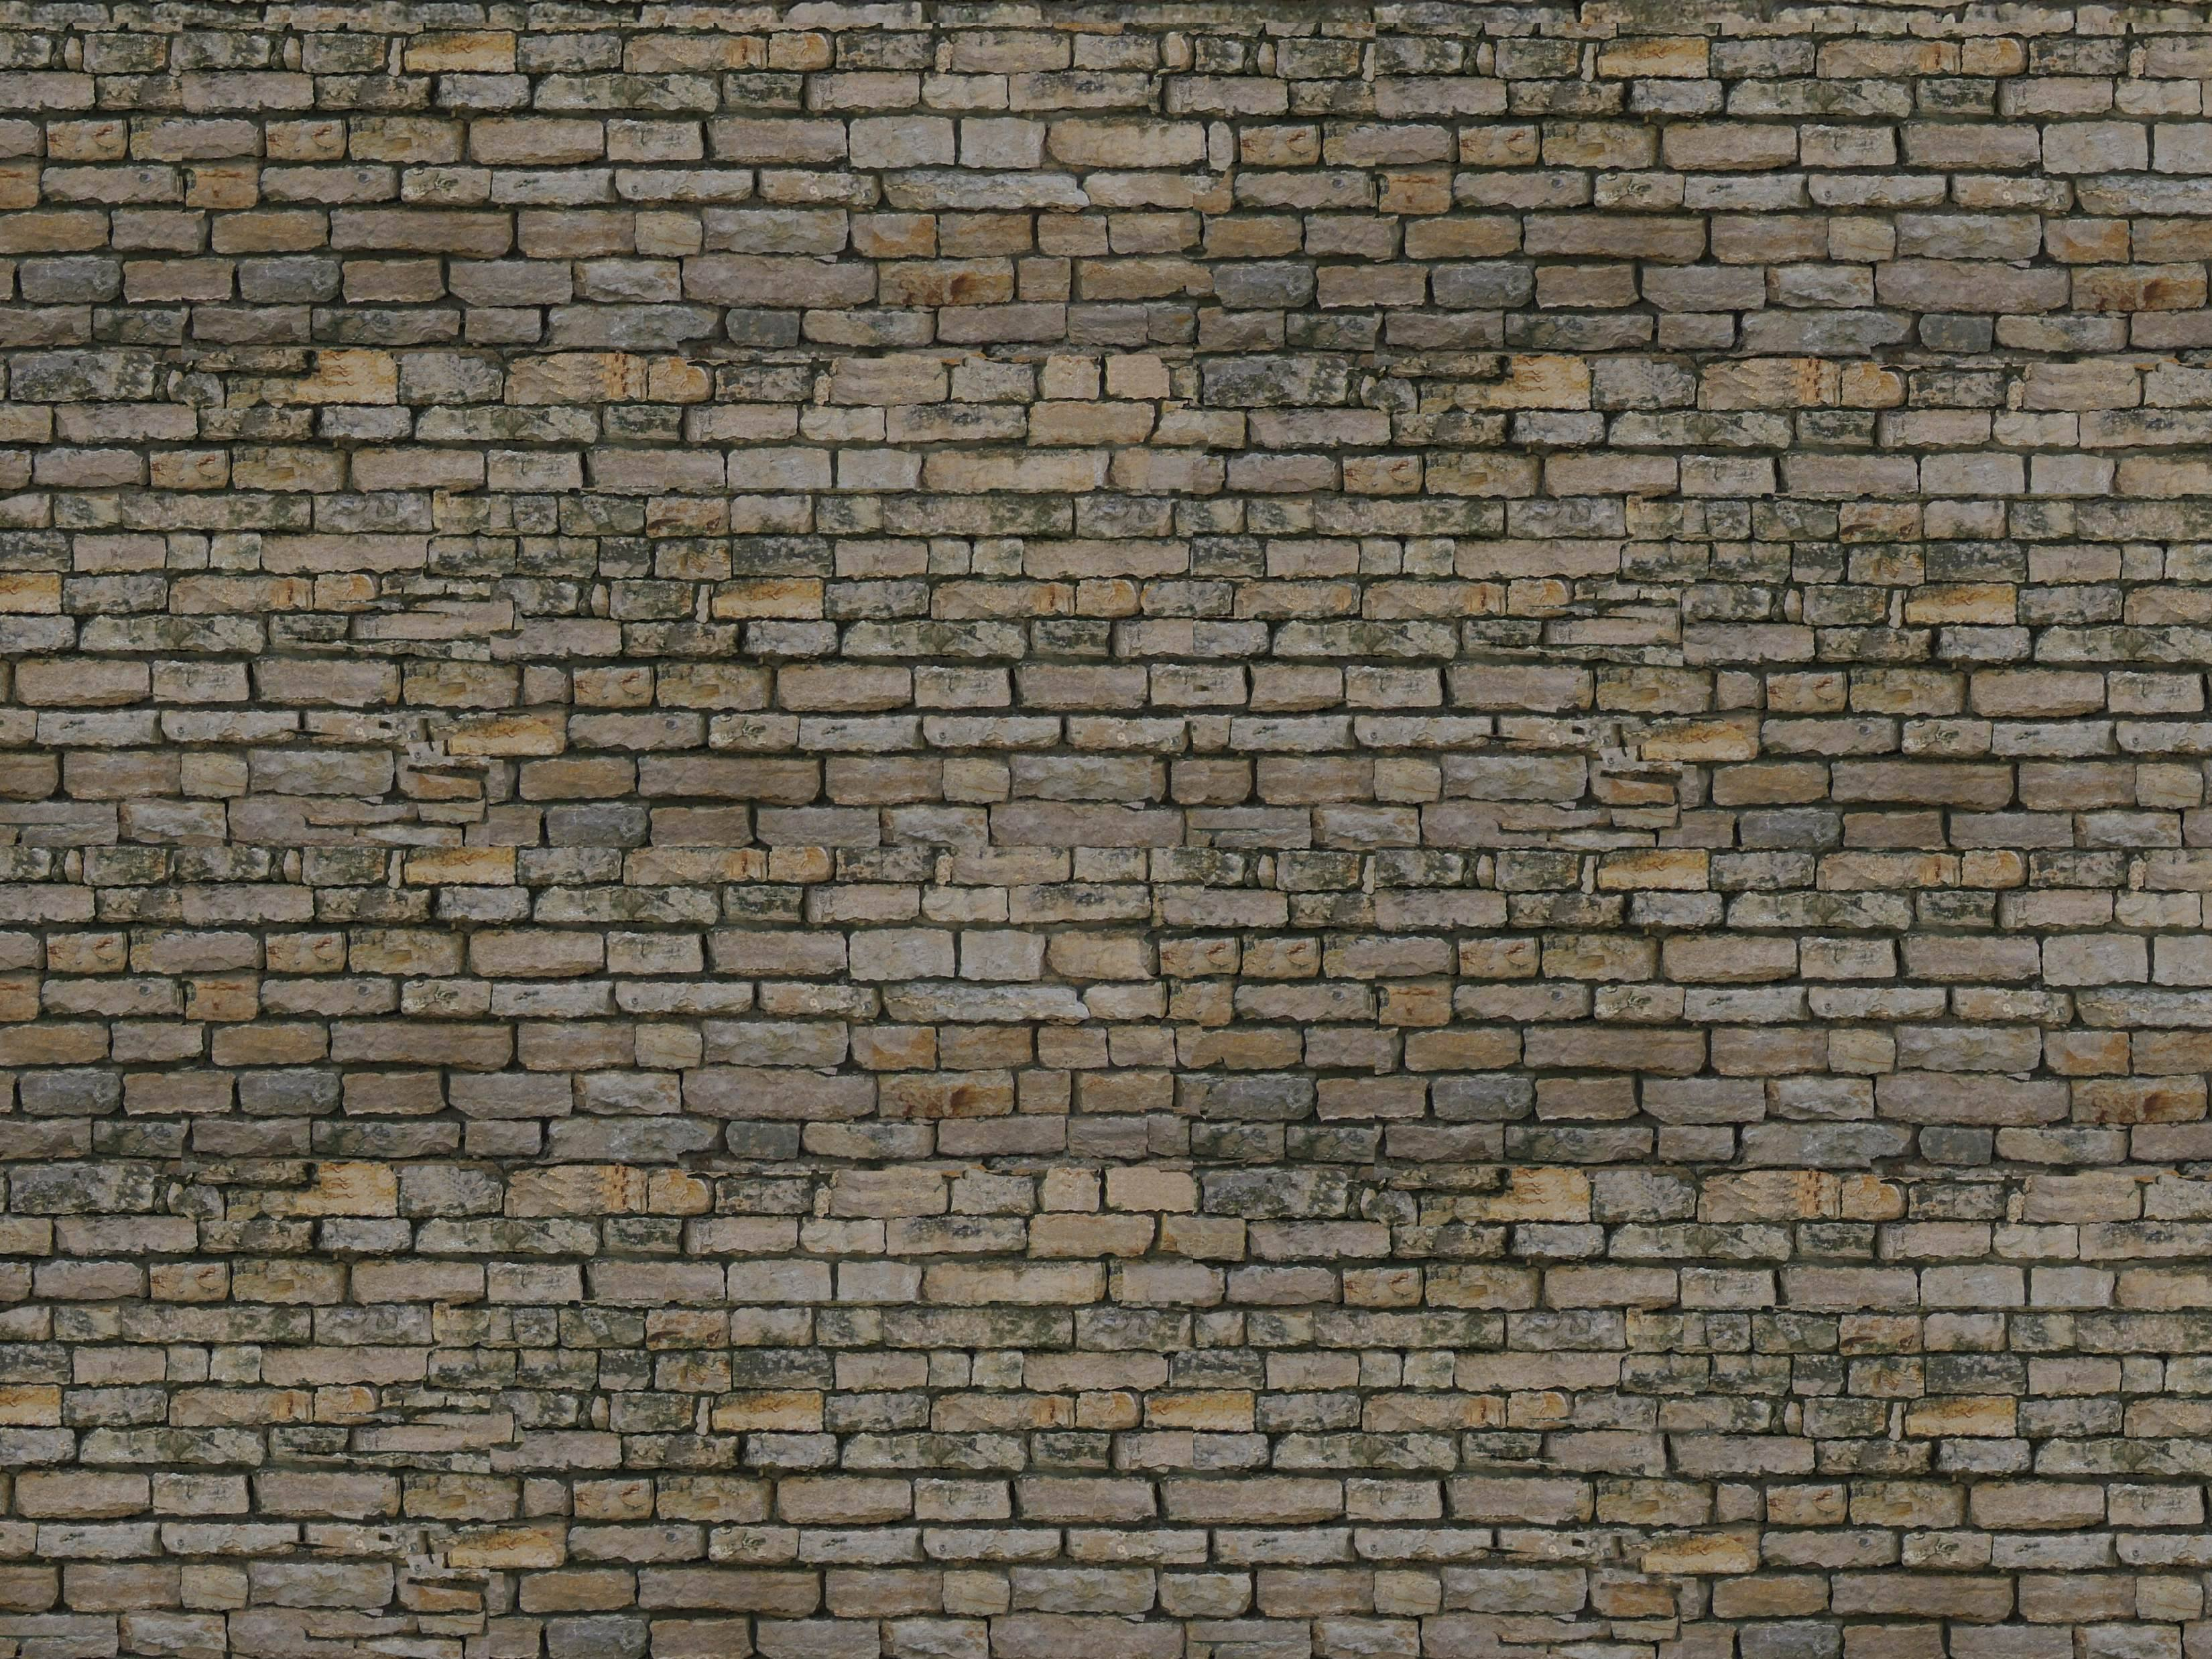 Small Stone Siding : Building textures from big indoor trains tm